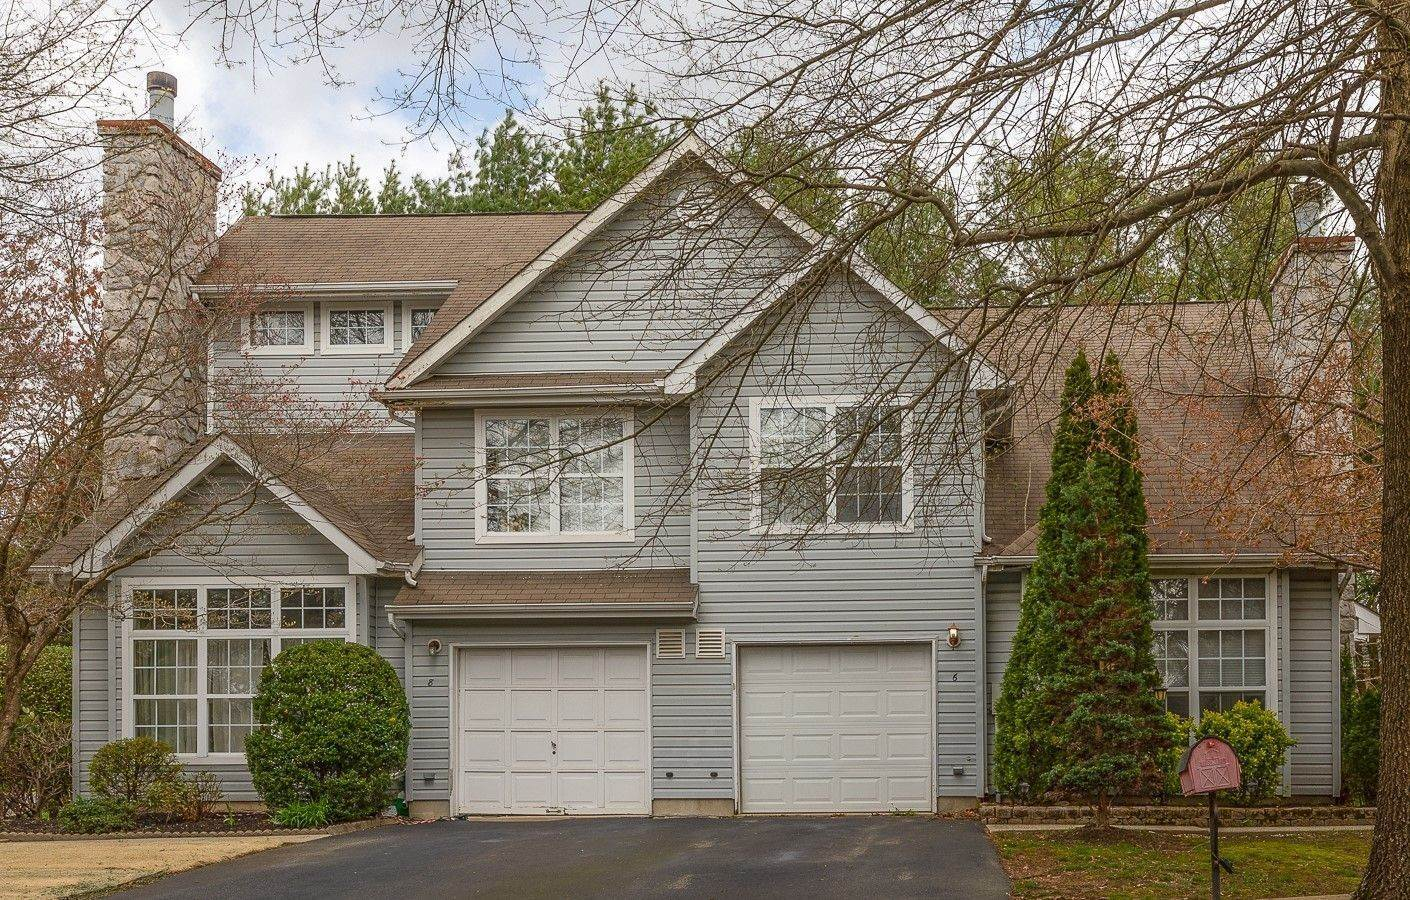 Property for Sale at Sought-After Community of Haymarket 6 Barnsdale Drive, Cranbury, New Jersey 08512 United States